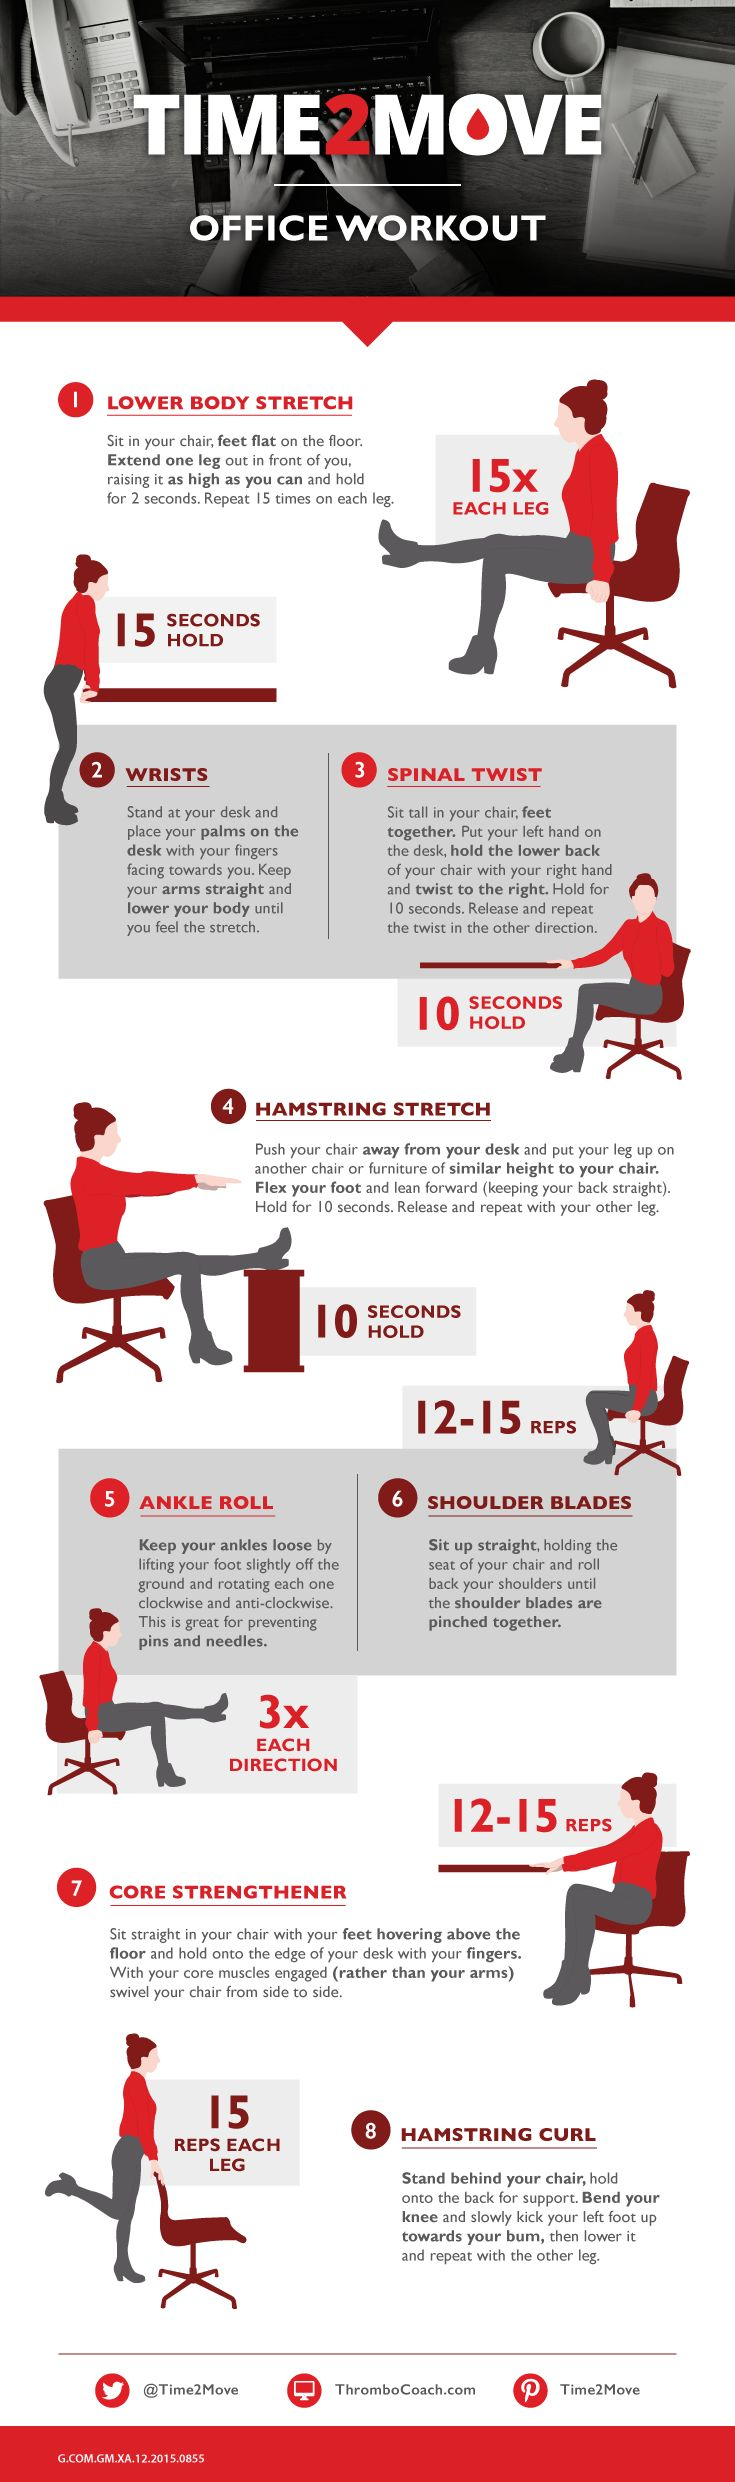 11 best office desk exercises images on pinterest office for Chair workouts